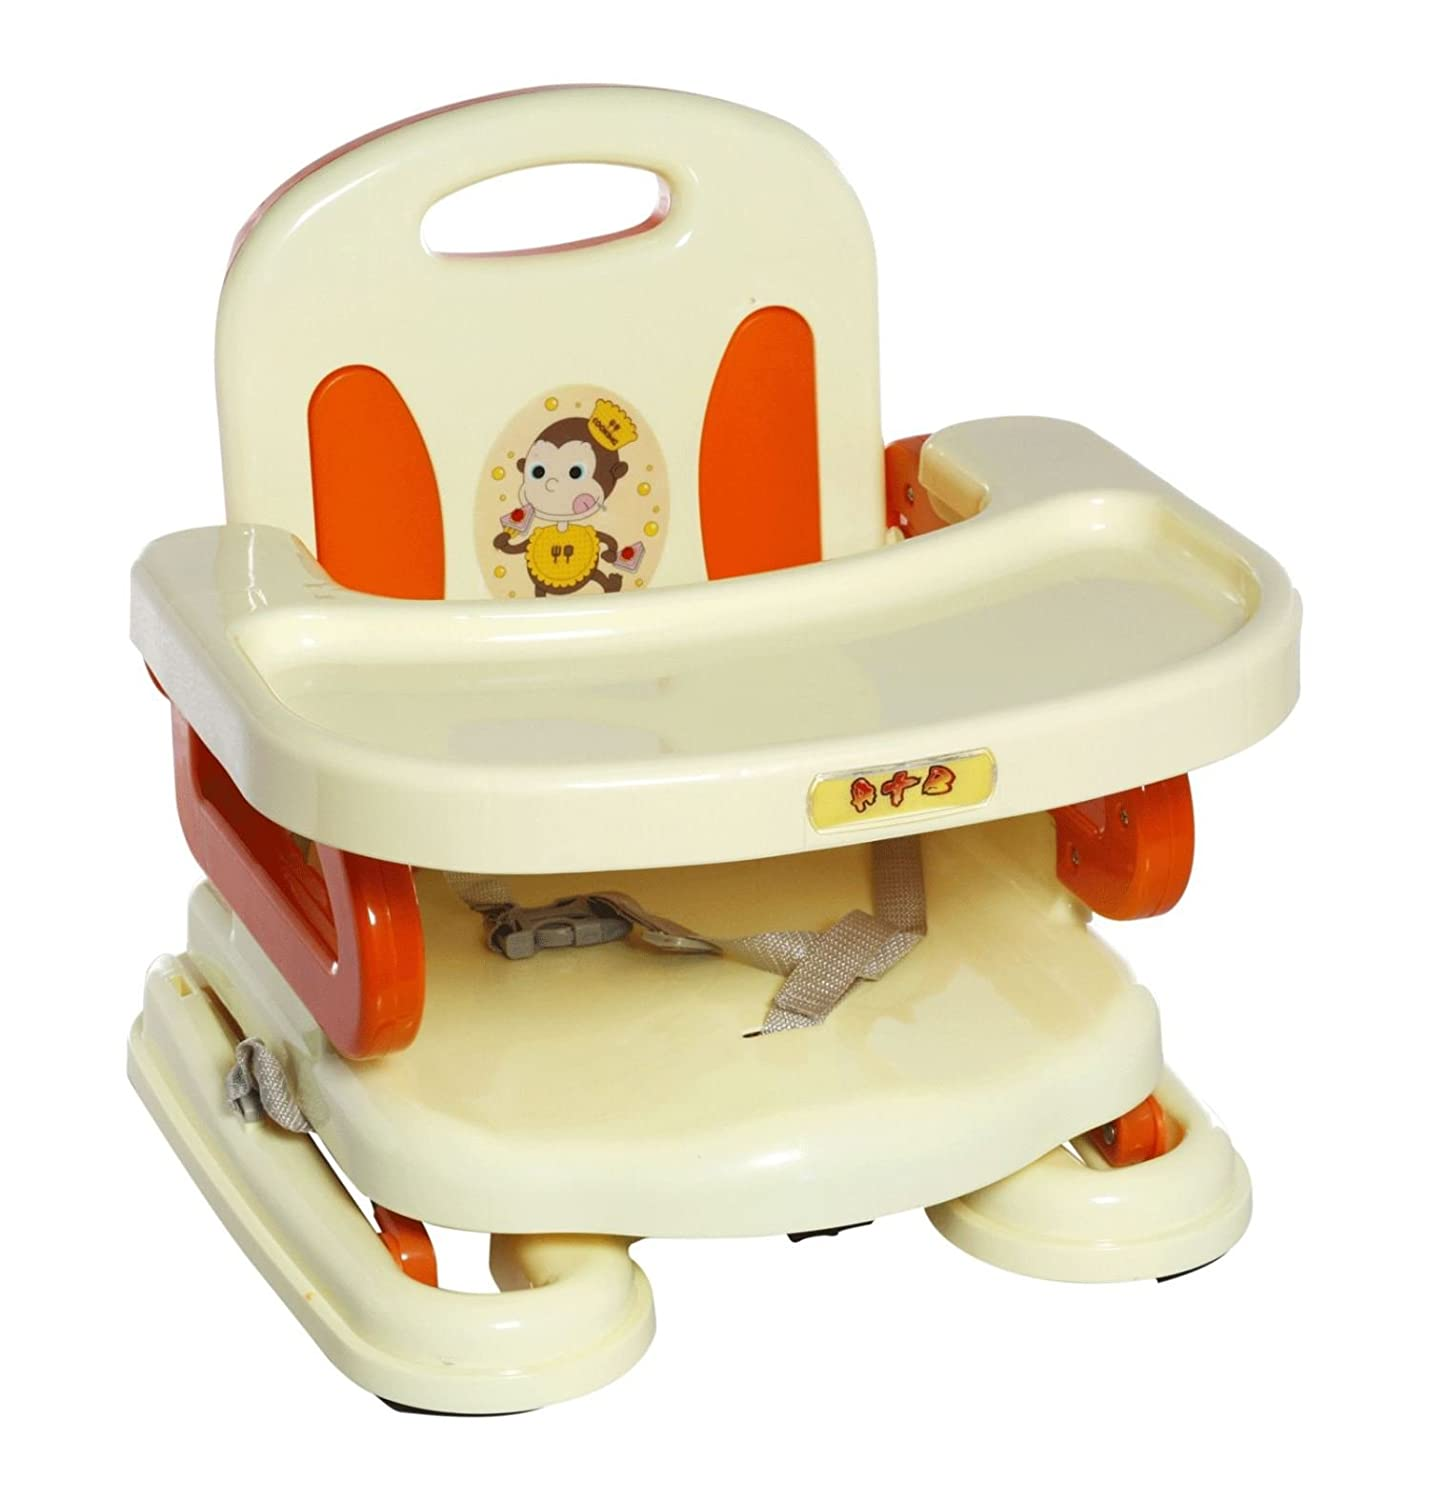 Buy A+B folding Dining chair Booster Seat - Yellow & Orange Online ...